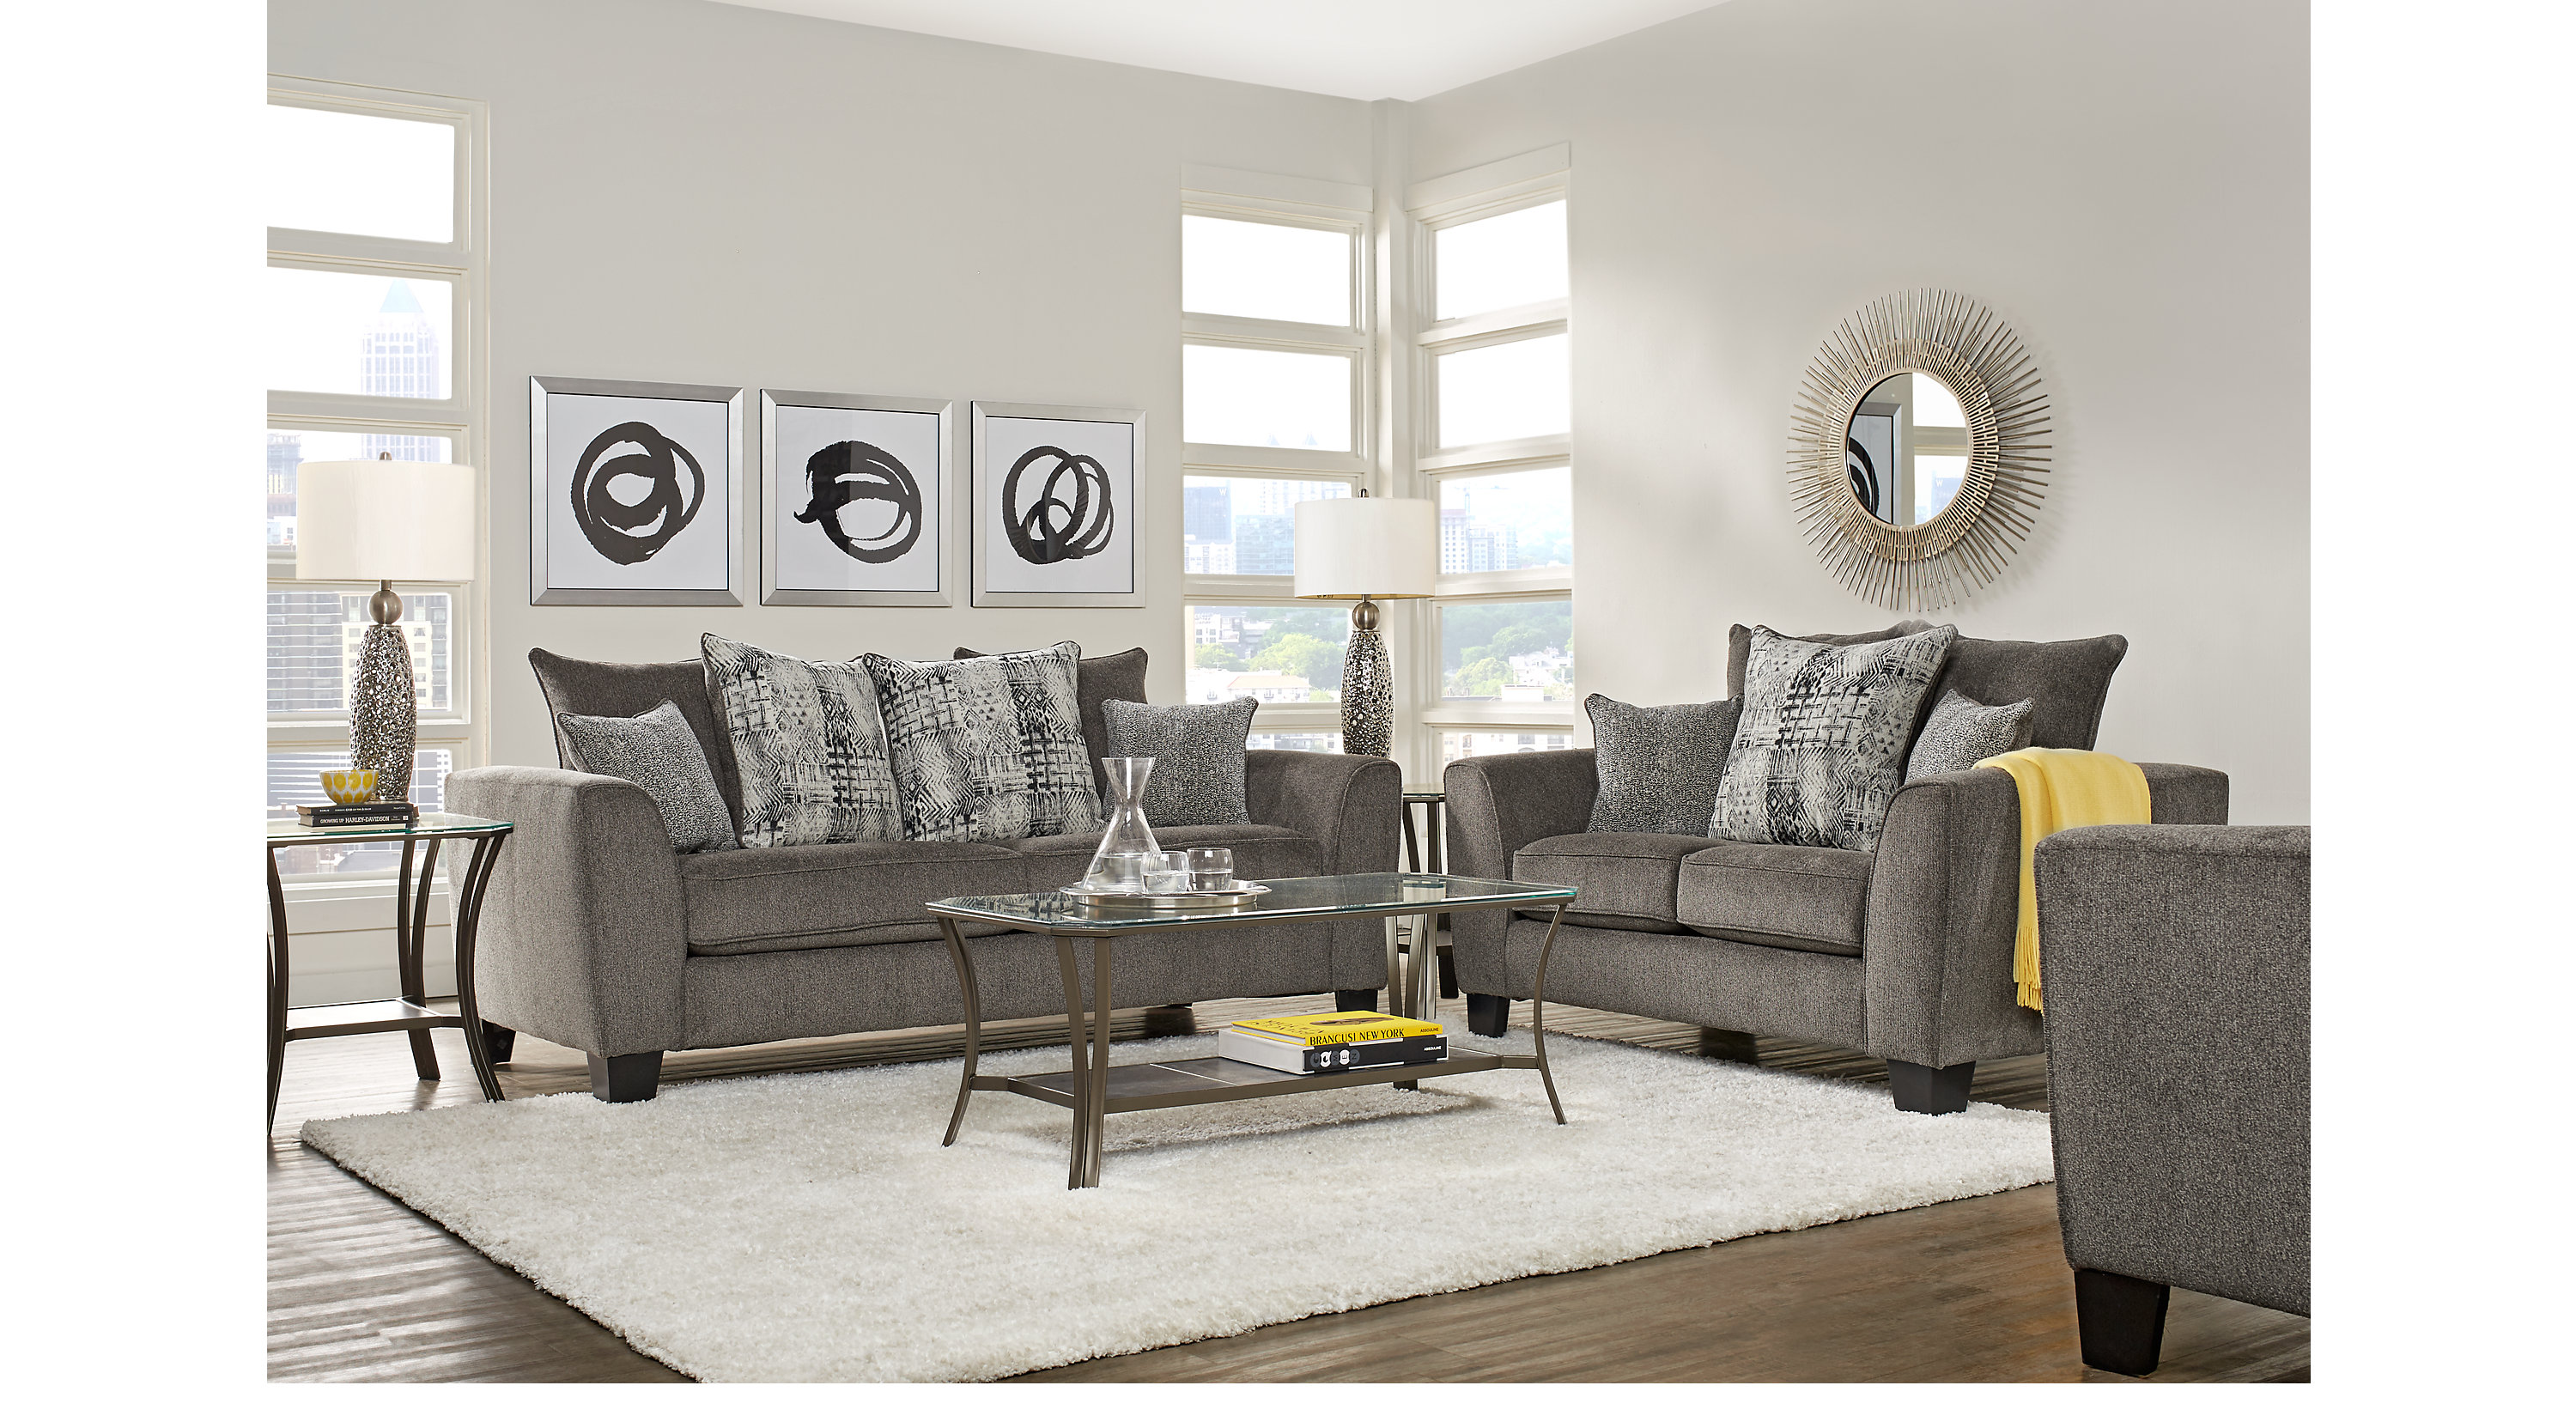 999 99 Austwell Gray 5 Pc Living Room Classic Contemporary